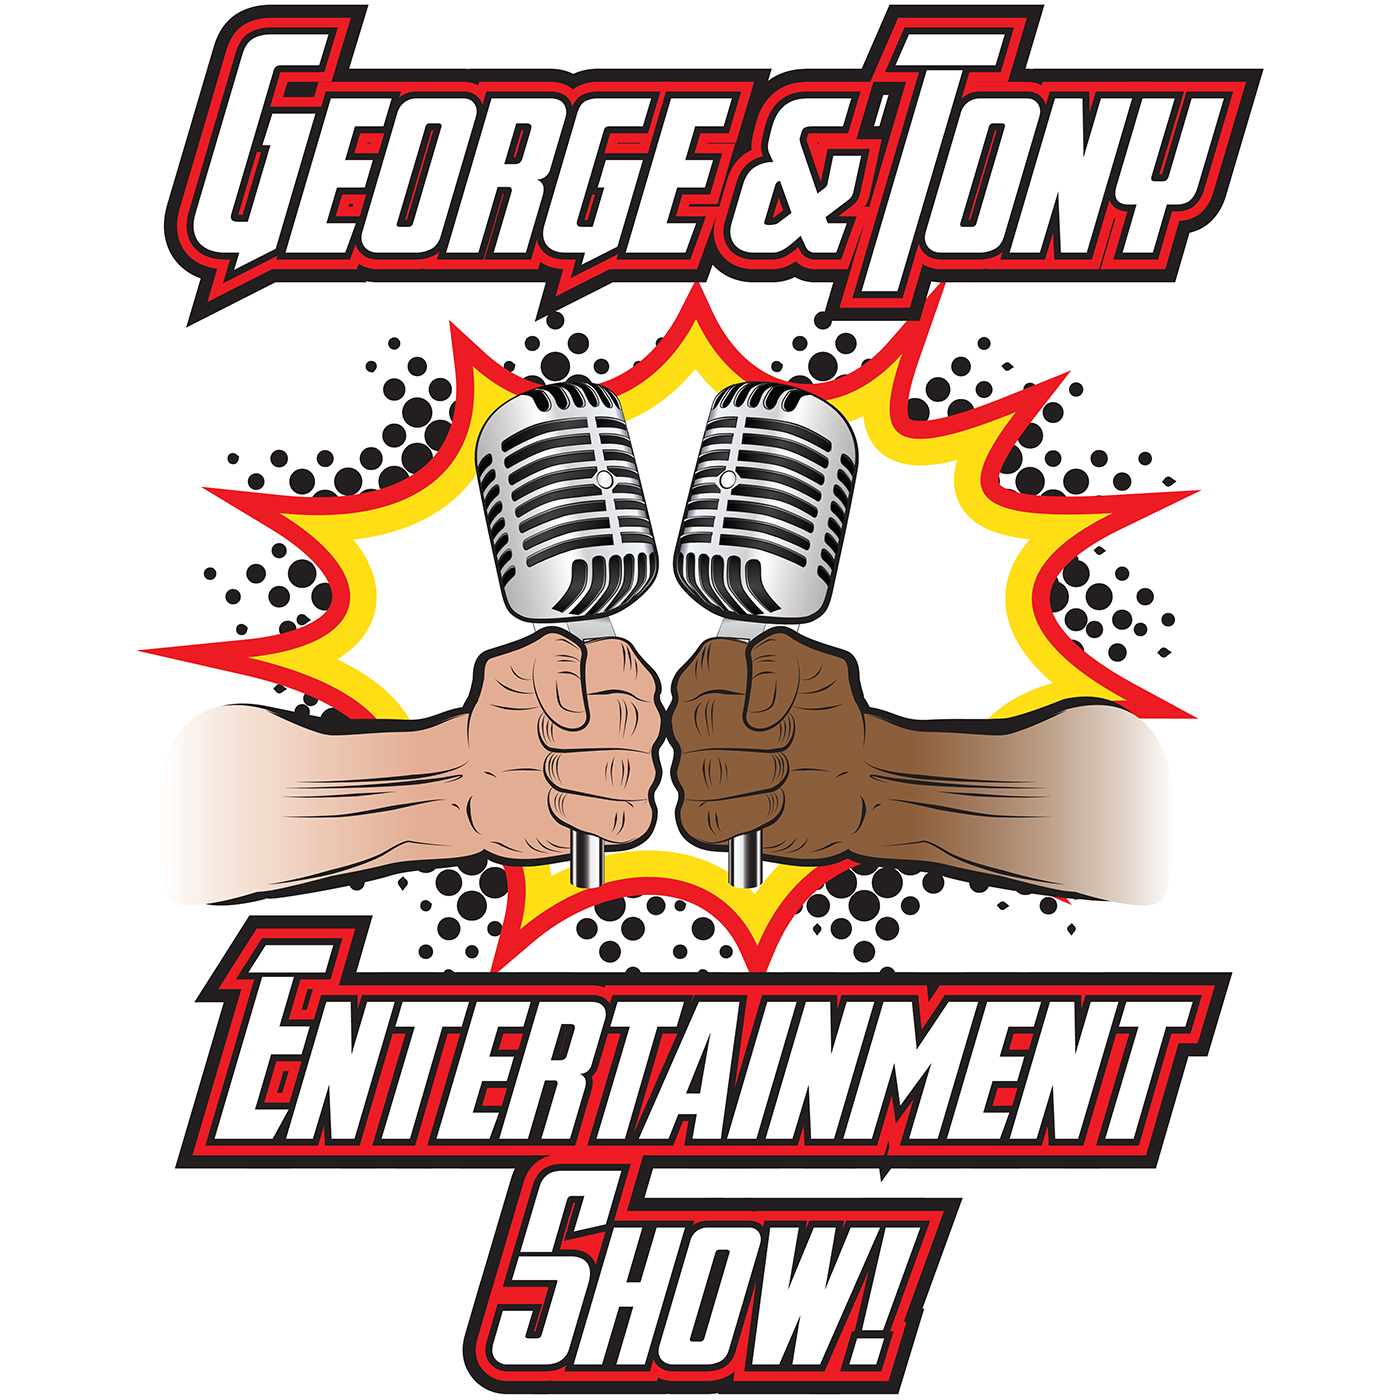 George and Tony Entertainment Show #115